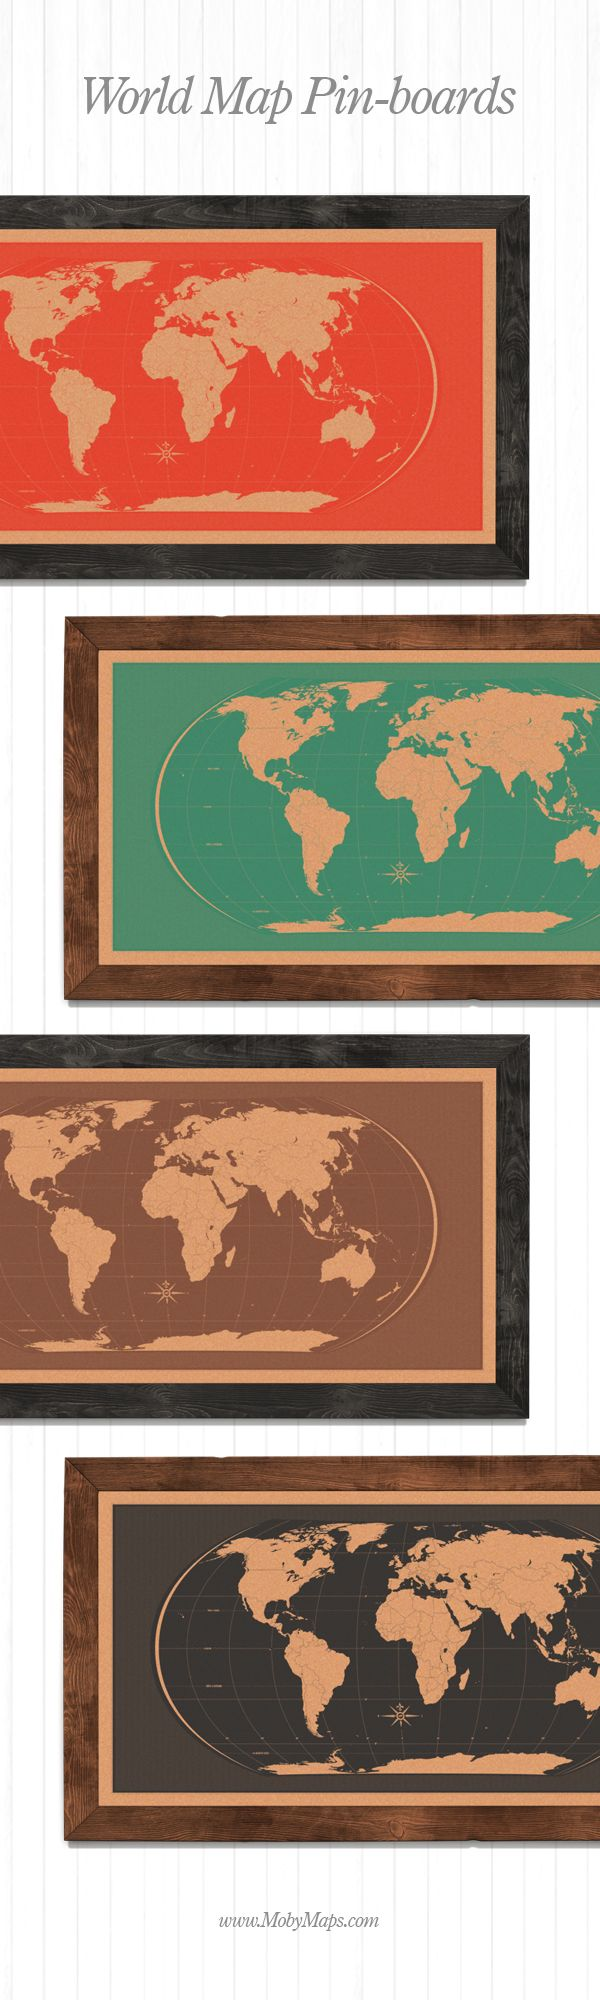 Hand made, silk-screen printed World Map Pin boards on raw cork boards, with rustic wooden frames. #pinboard #worldmap #travel